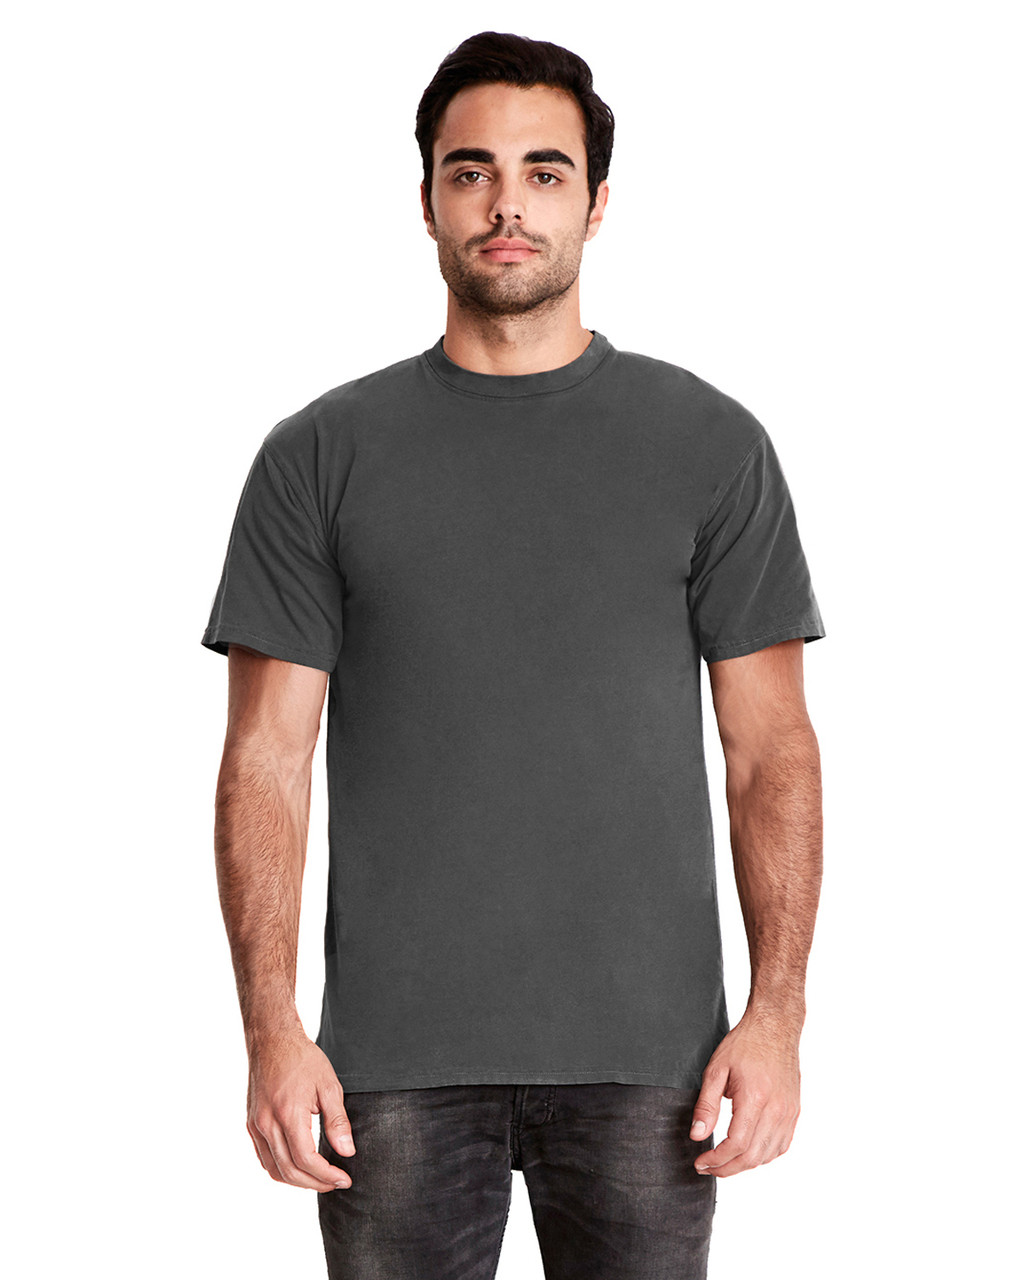 Shadow - 7410 Next Level Adult Inspired Dye Crew T-Shirt | Blankclothing.ca